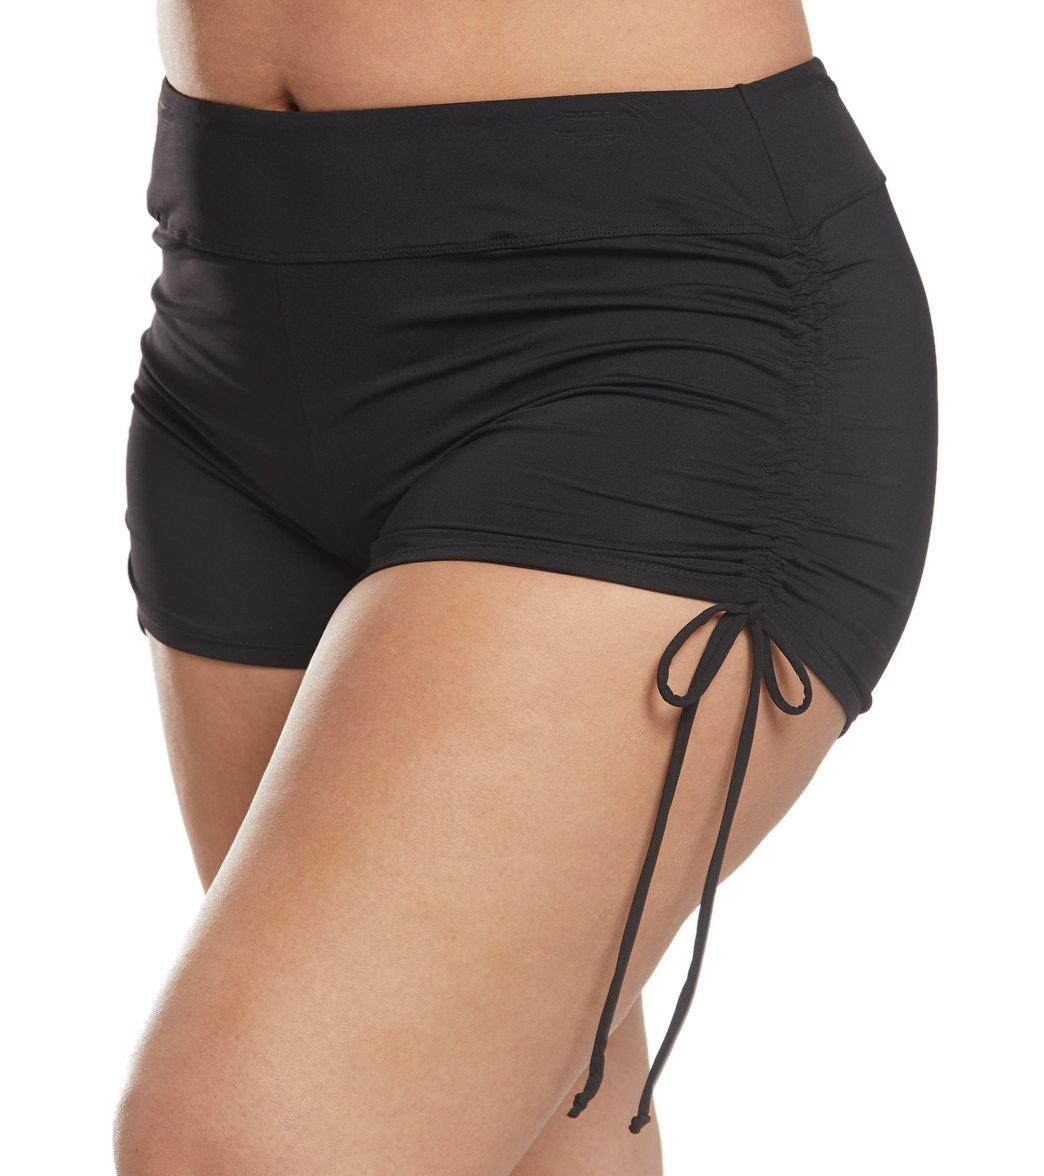 49e9b0038bee3a Beach House Plus Size Solid Blake Adjustable Side Tie Swim Short at  SwimOutlet.com - Free Shipping